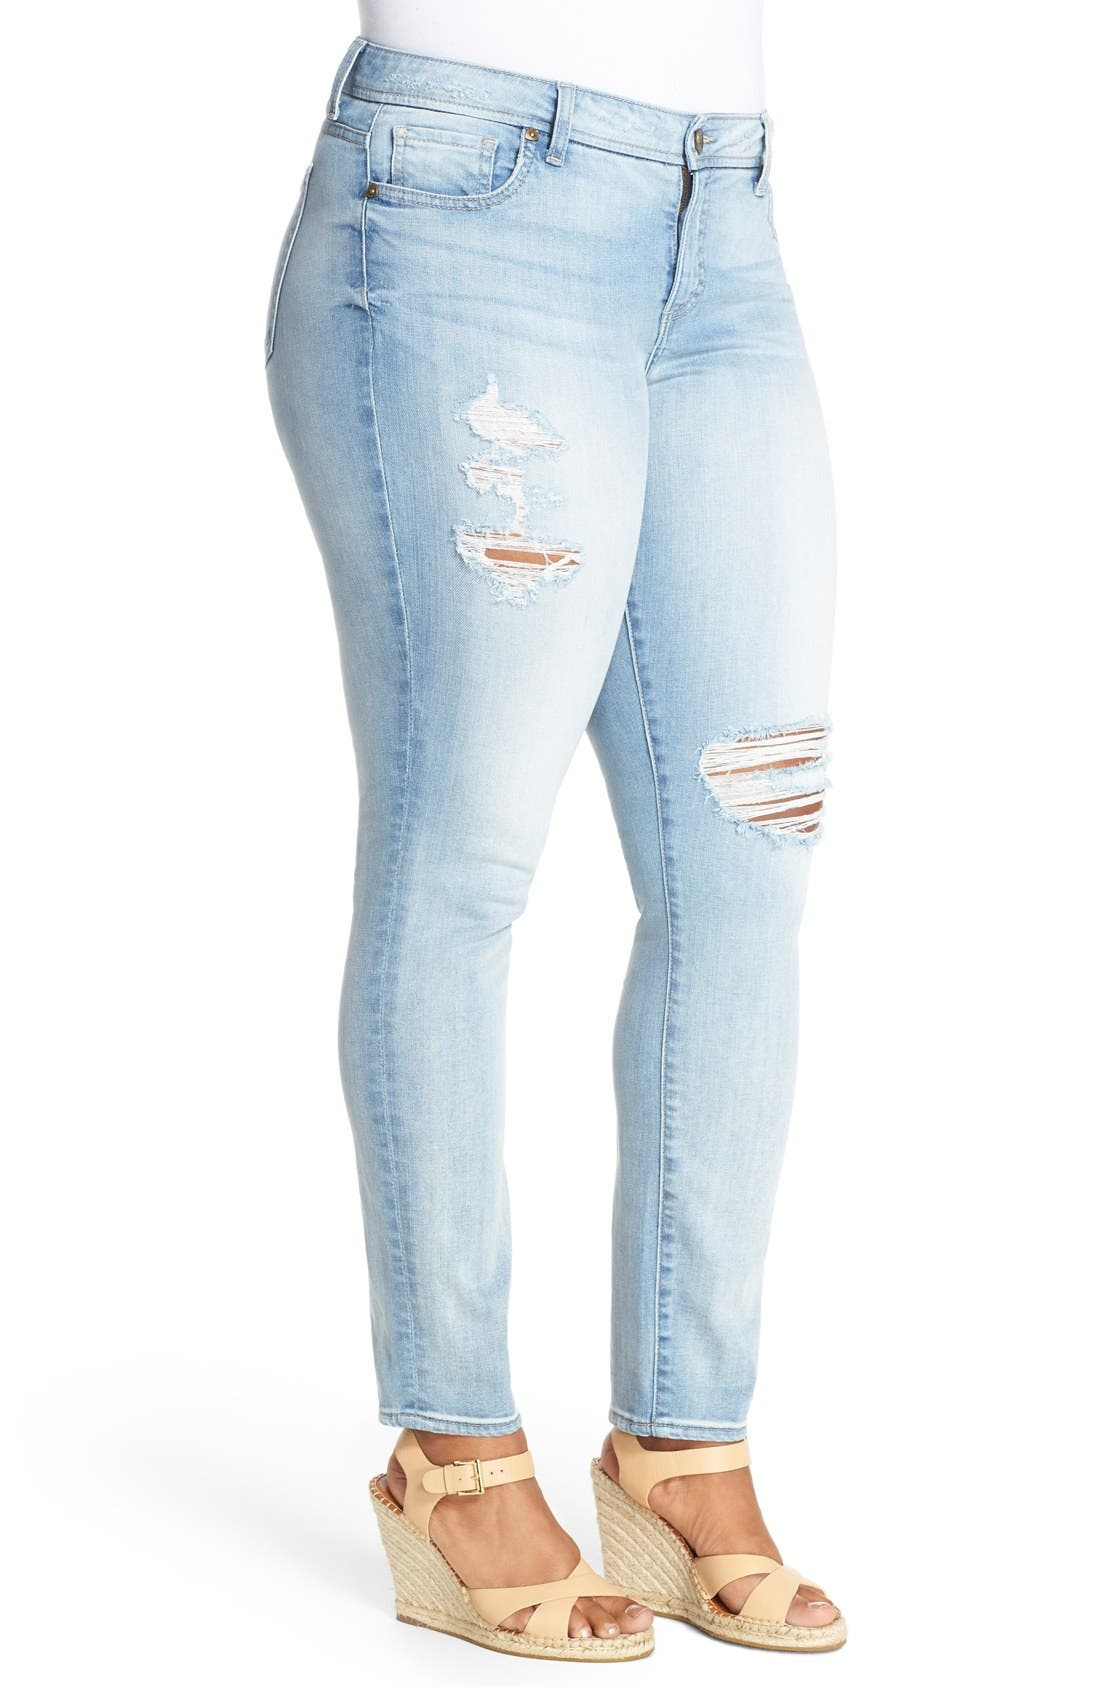 'Adele' Ripped Stretch Slouchy Boyfriend Jeans,                             Alternate thumbnail 3, color,                             UPGRADE